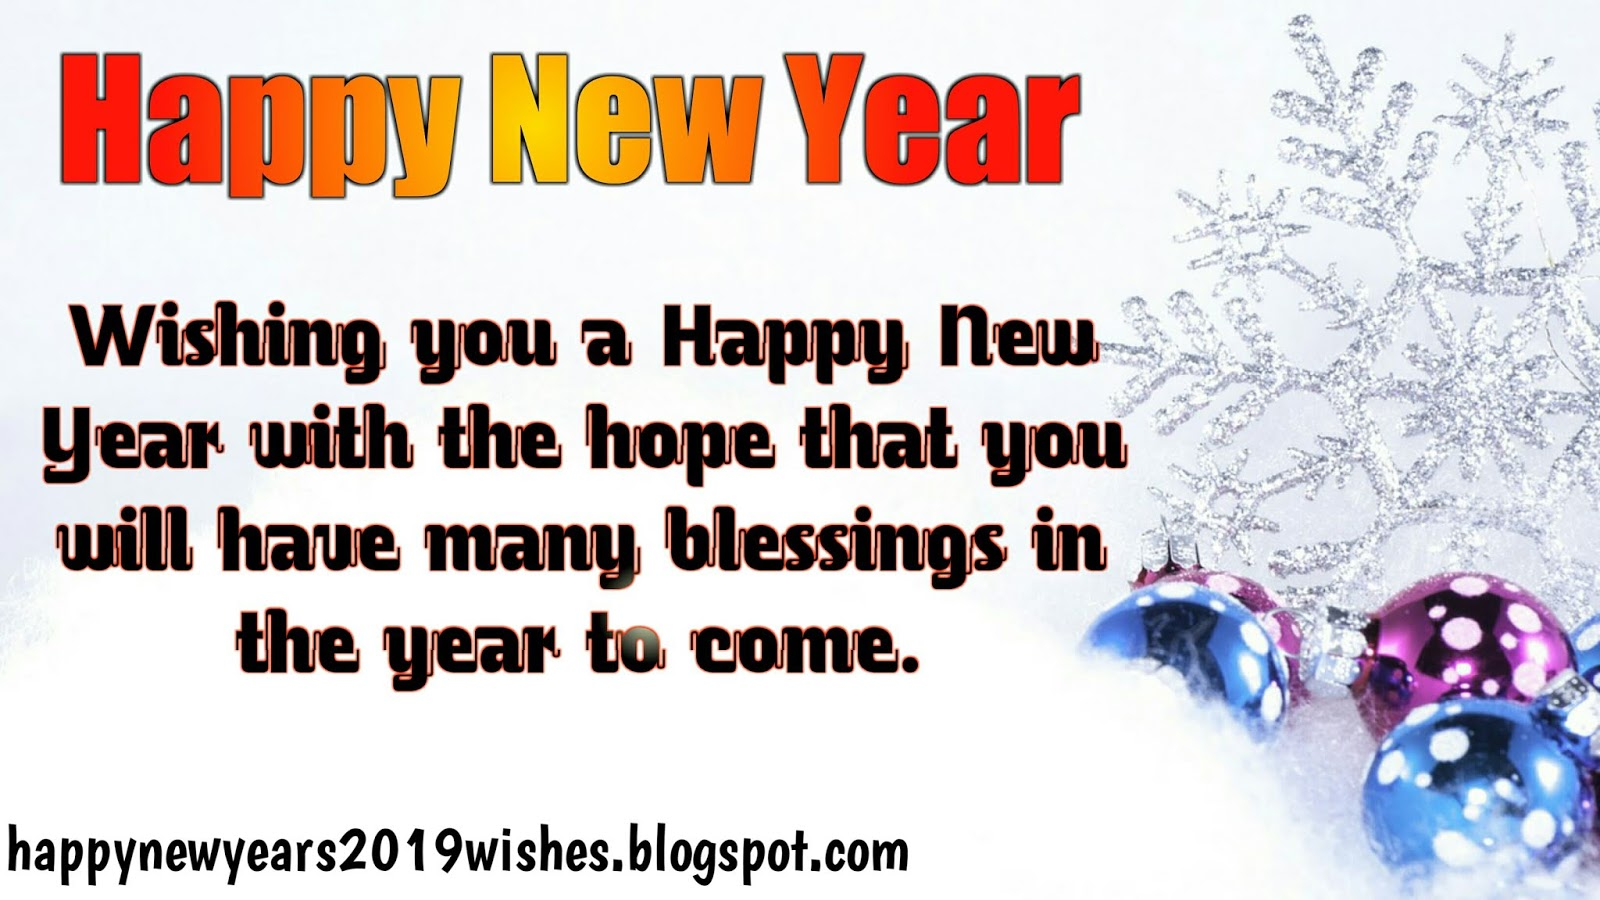 Happy New Year Images 2019 | Happy New Year 2019 Images HD - Happy ...